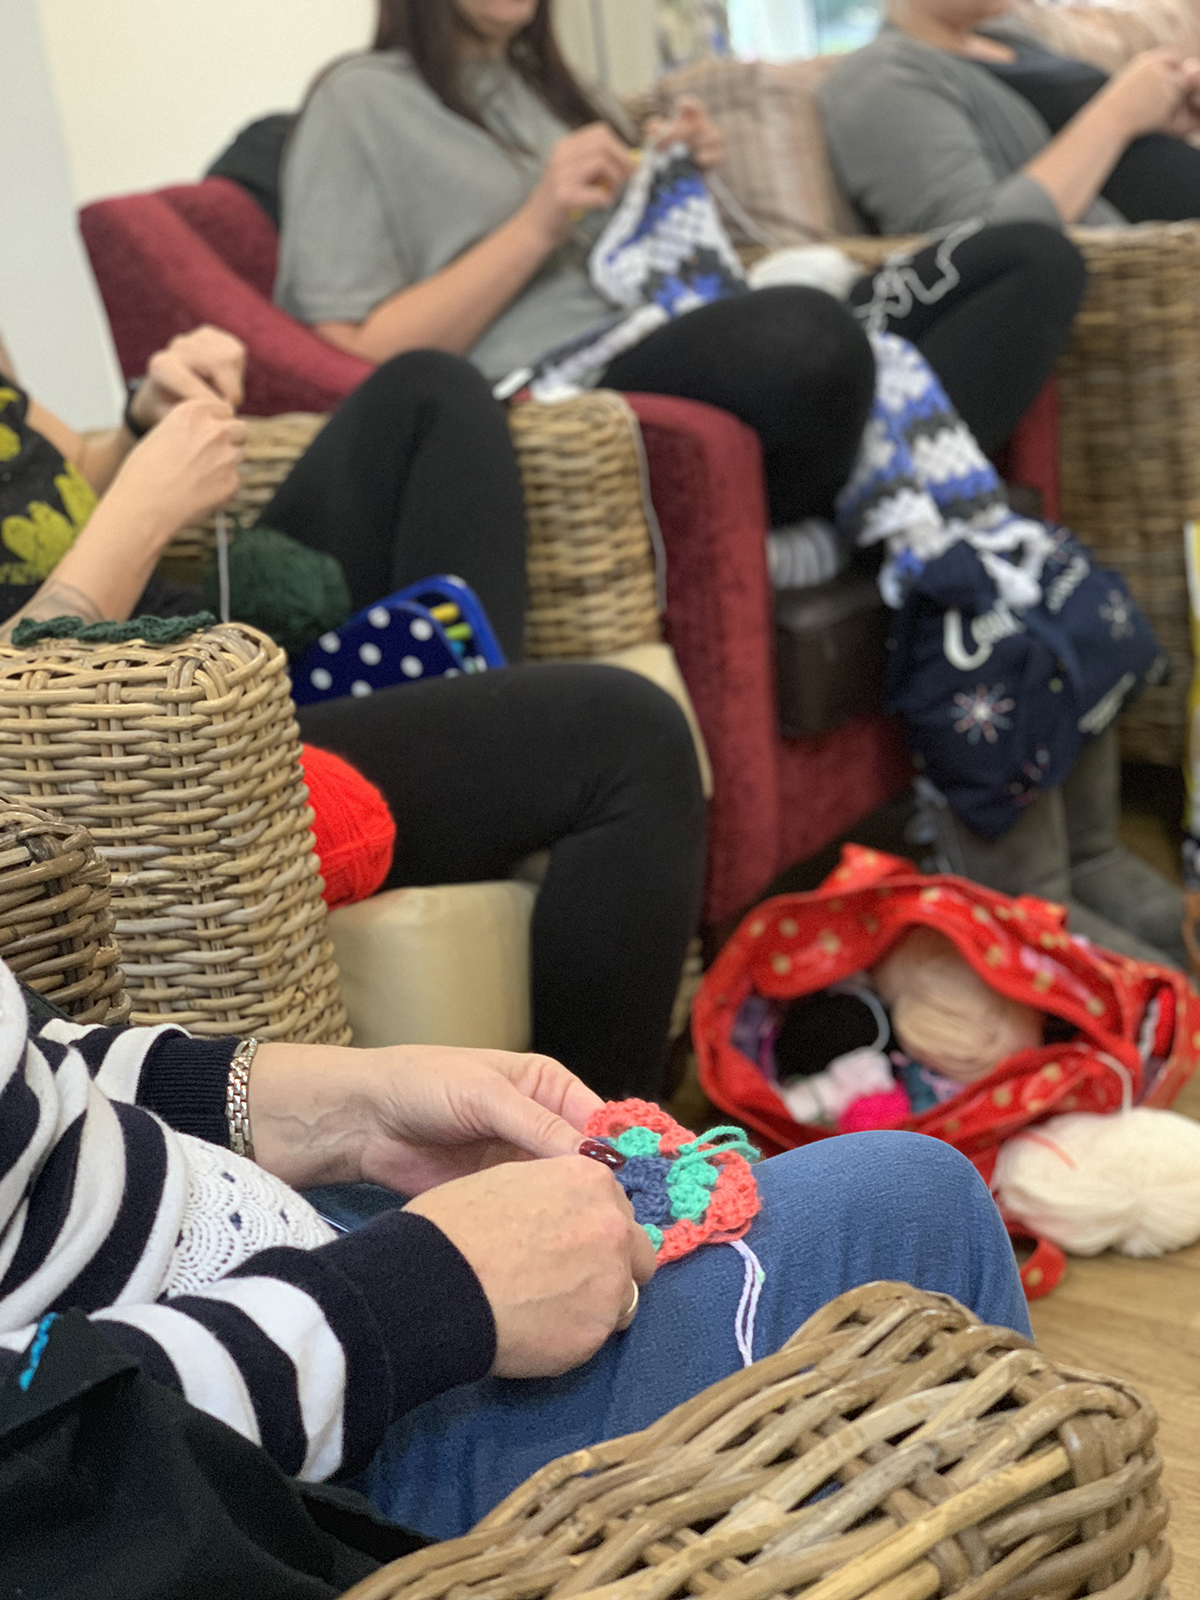 Crochet Club at Four Oaks